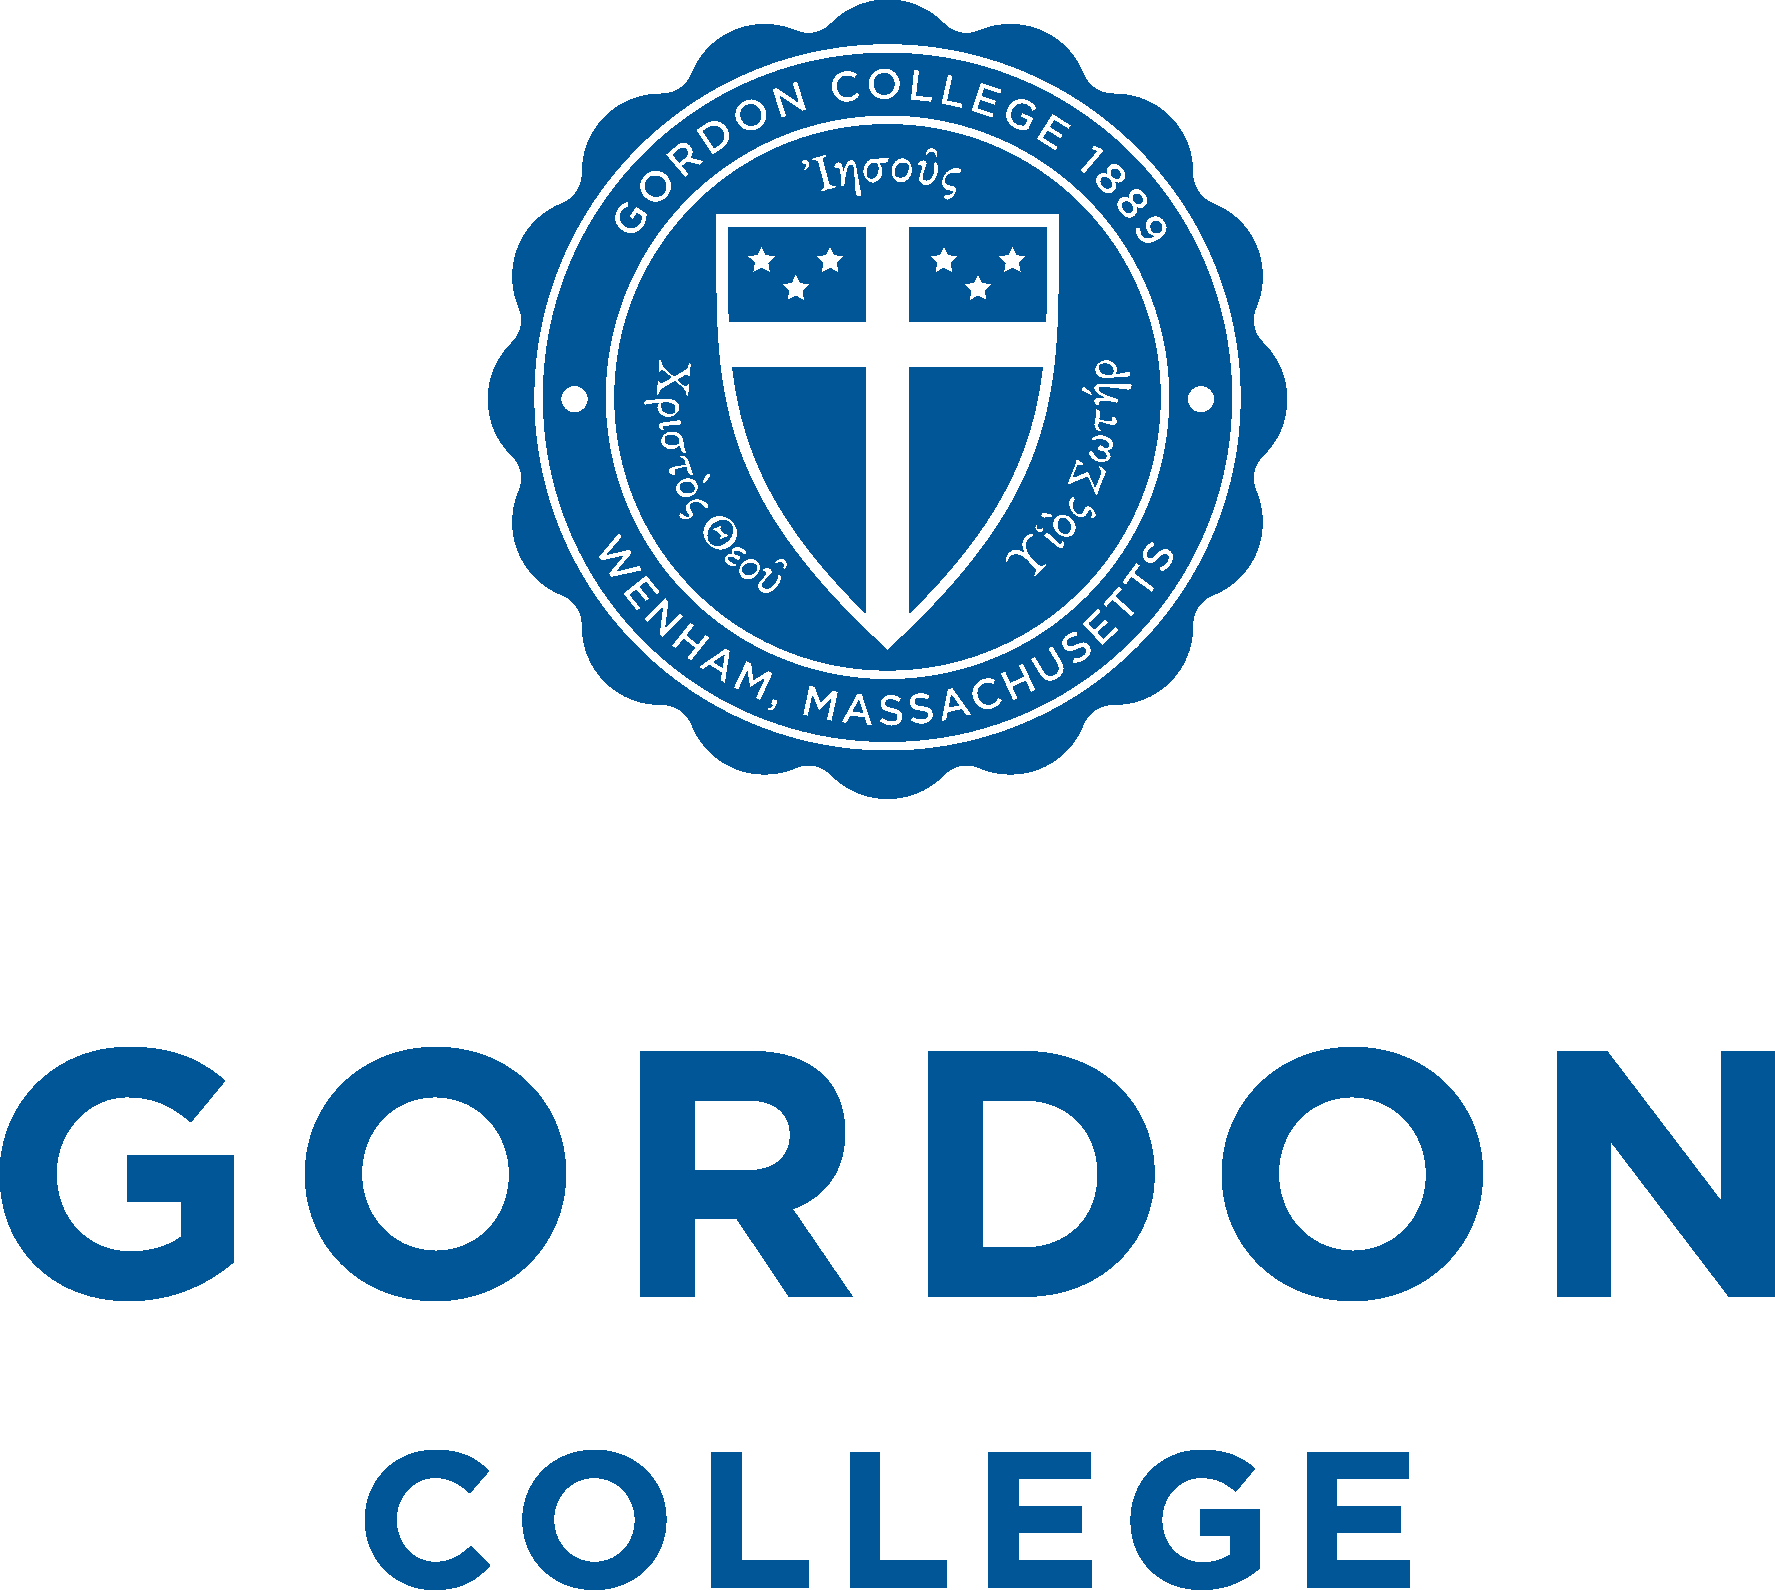 Gordon College - Massachusetts